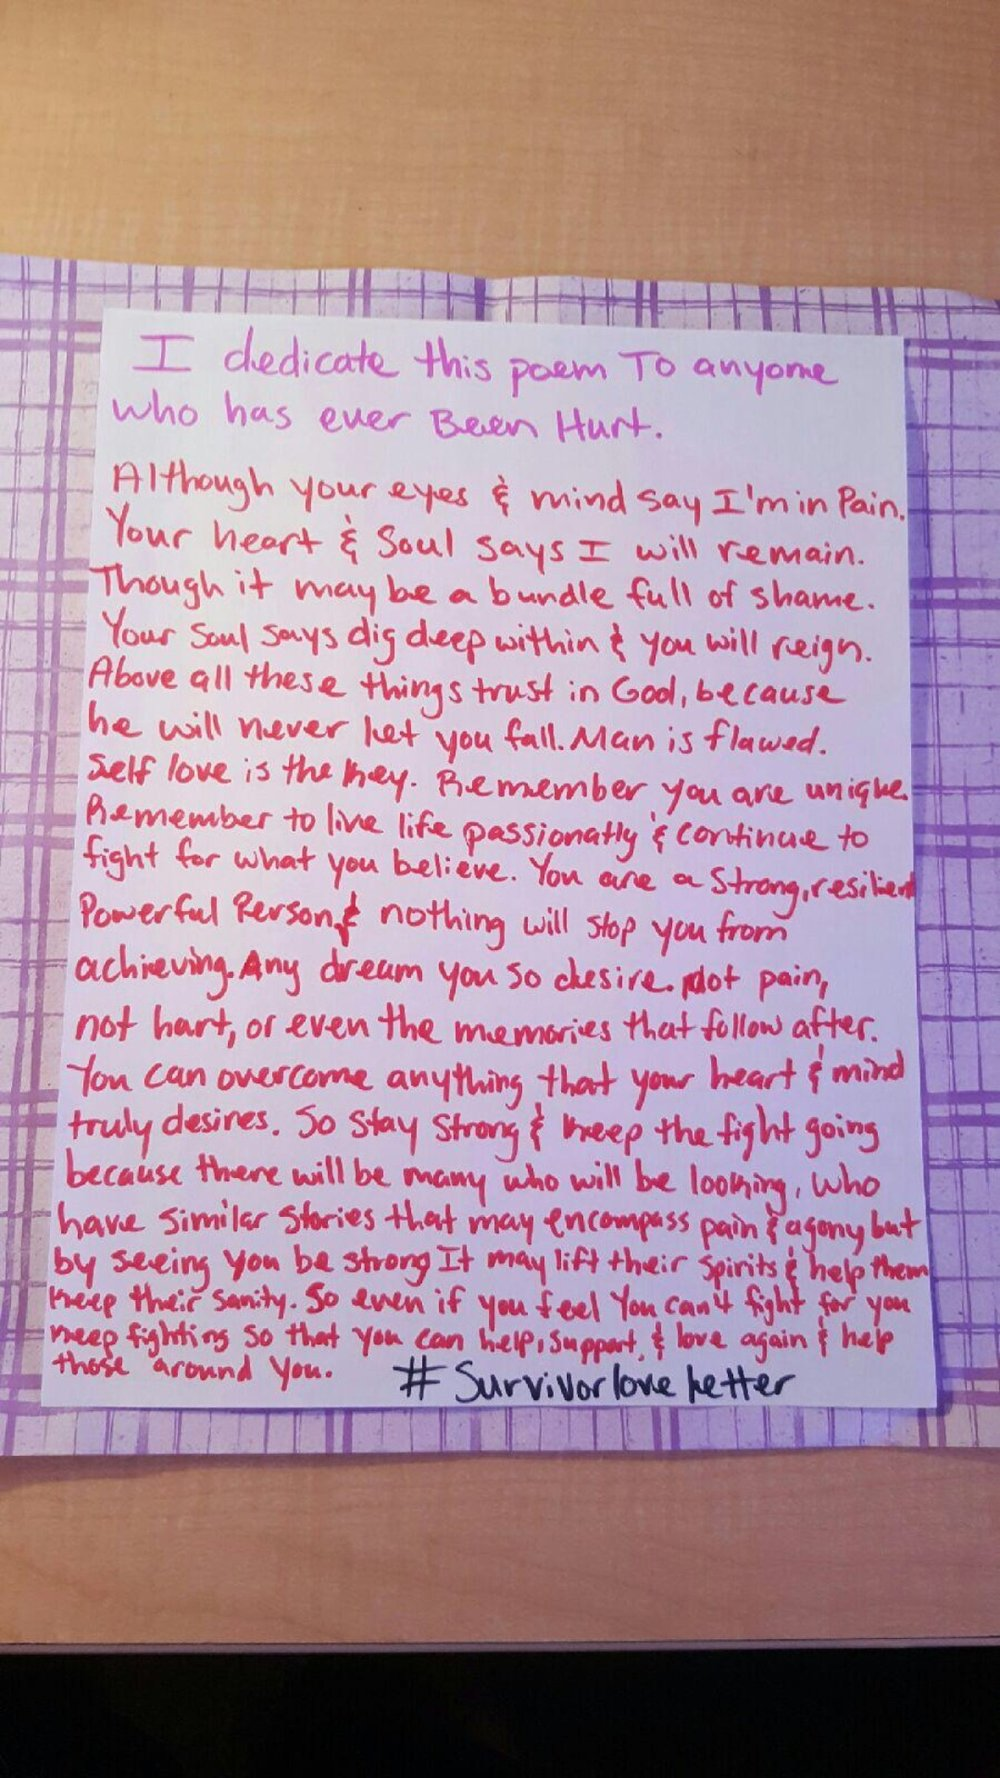 I dedicate this poem to anyone who had ever been hurt.  Although your eyes & mind say I'm in Pain. Your heart & Soul says I will remain. Though it may be a bundle full of shame. Your Soul says dig deep within & you will reign. Above all these things trust in God, because he will never let you fall. Man is flawed. Self love is the key. Remember you are unique. Remember to live life passionately & continue to  fight for what you believe. You are a Strong, resilient Powerful Person & nothing will stop you from  achieving. Any dream you desire. Not pain, not hurt, not even the memories that follow after. You can overcome anything that your heart & mind  truly desires. So stay strong & keep the fight going because there will be many who will be looking, who have similar stories that may encompass pain & agony but by seeing you be strong it may lift their spirits & help them Keep their sanity. So even if you feel you can't fight for you Keep fighting so that you can help, support & love again & help those around you.     #survivorloveletter